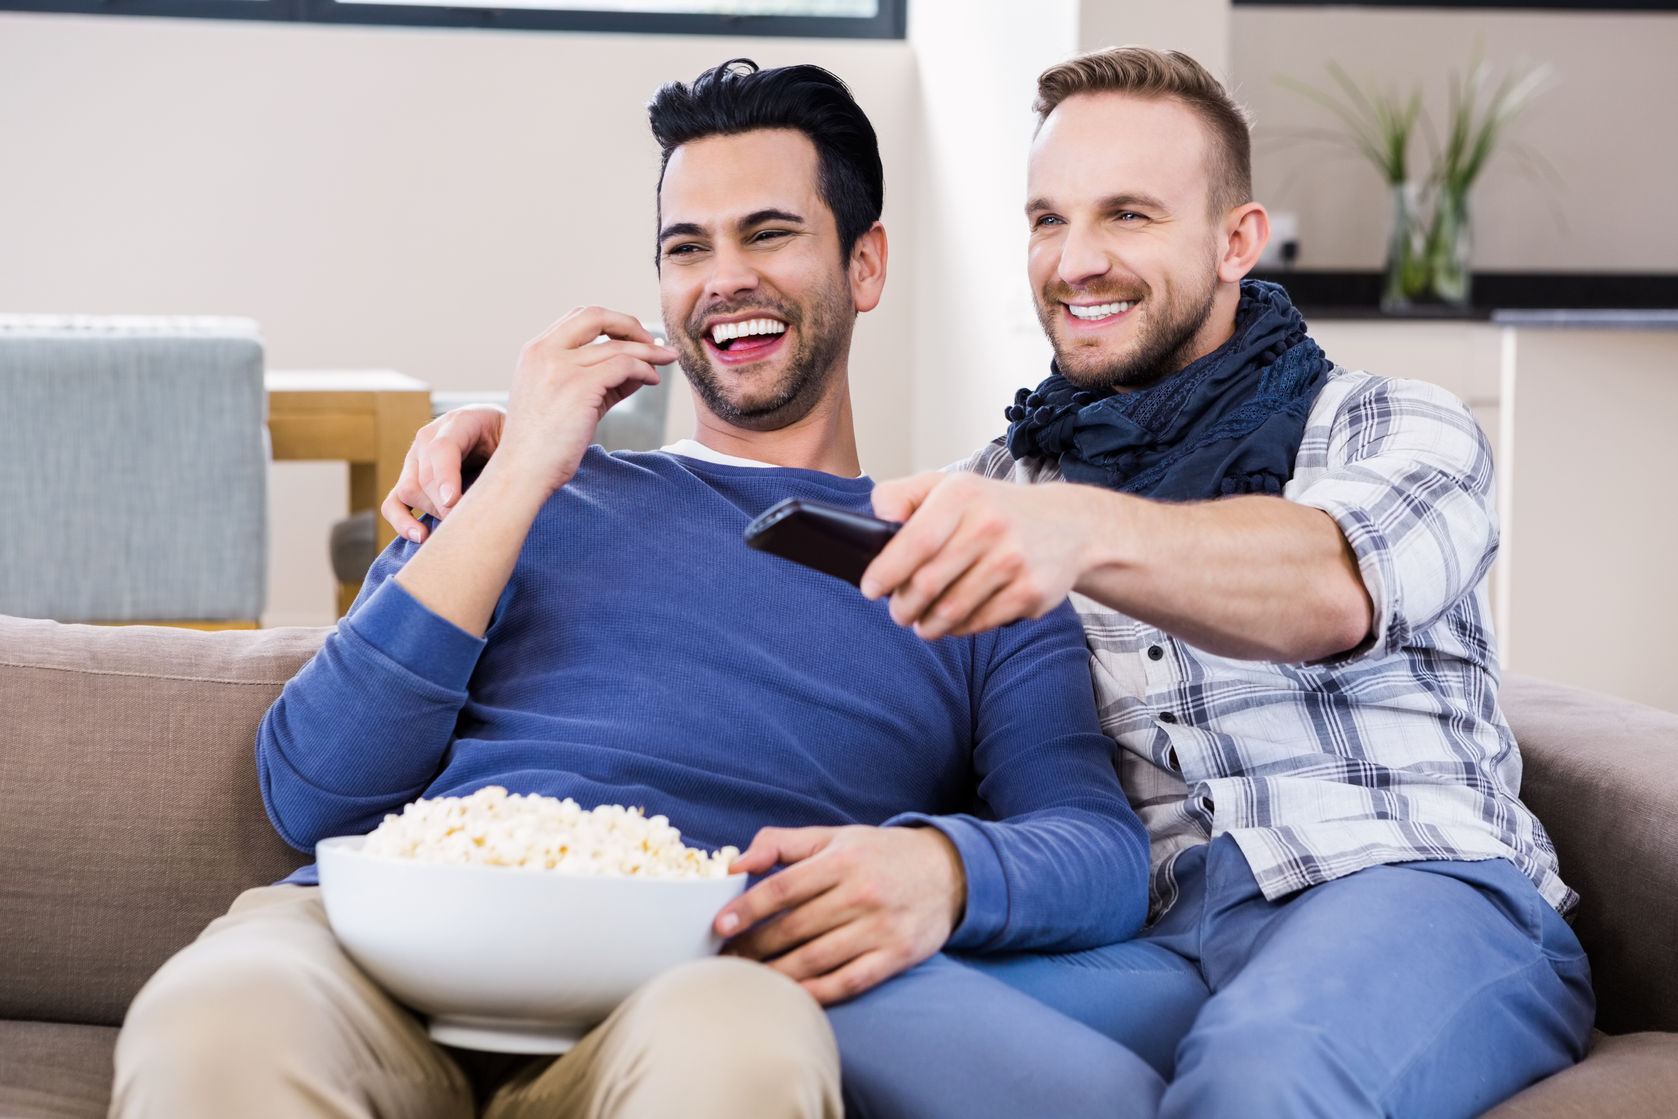 latest gay movies on netflix